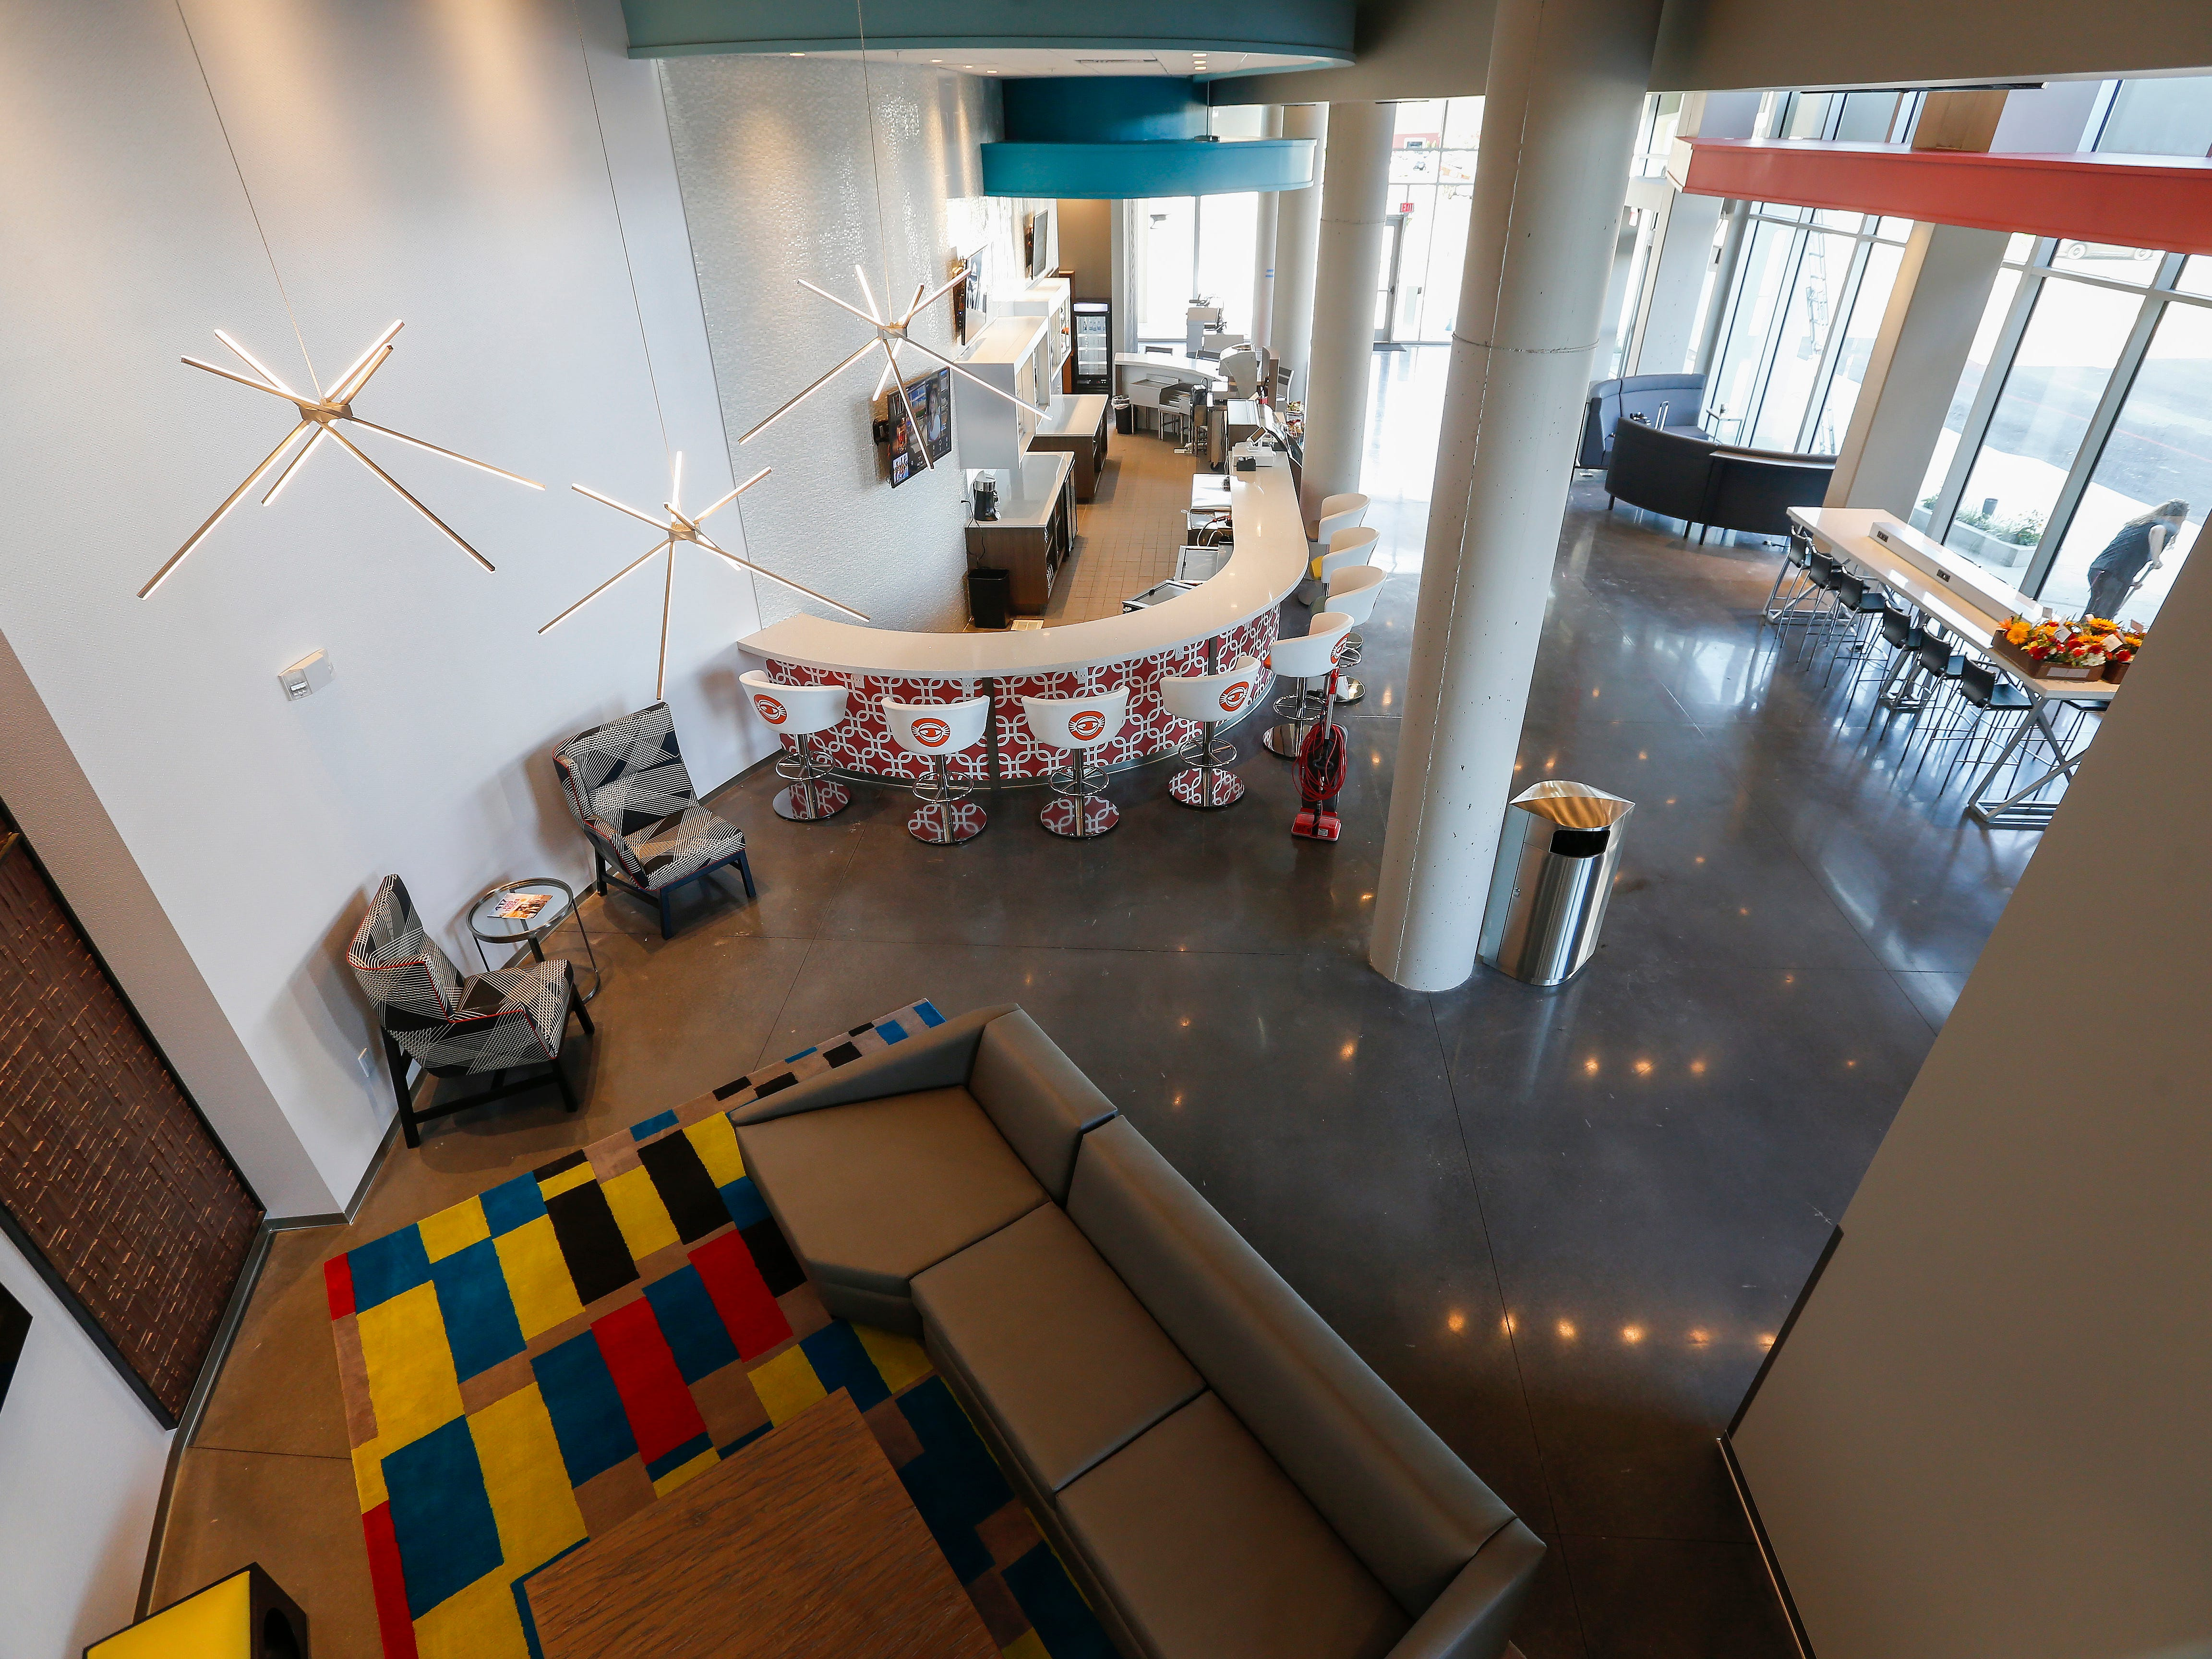 A look at the lobby from the Zen Zone of the mezzanine level at the new Vib Hotel, located at 1845 E Sunshine St. The hotel will hold its grand opening on Friday, Aug. 10, 2018.